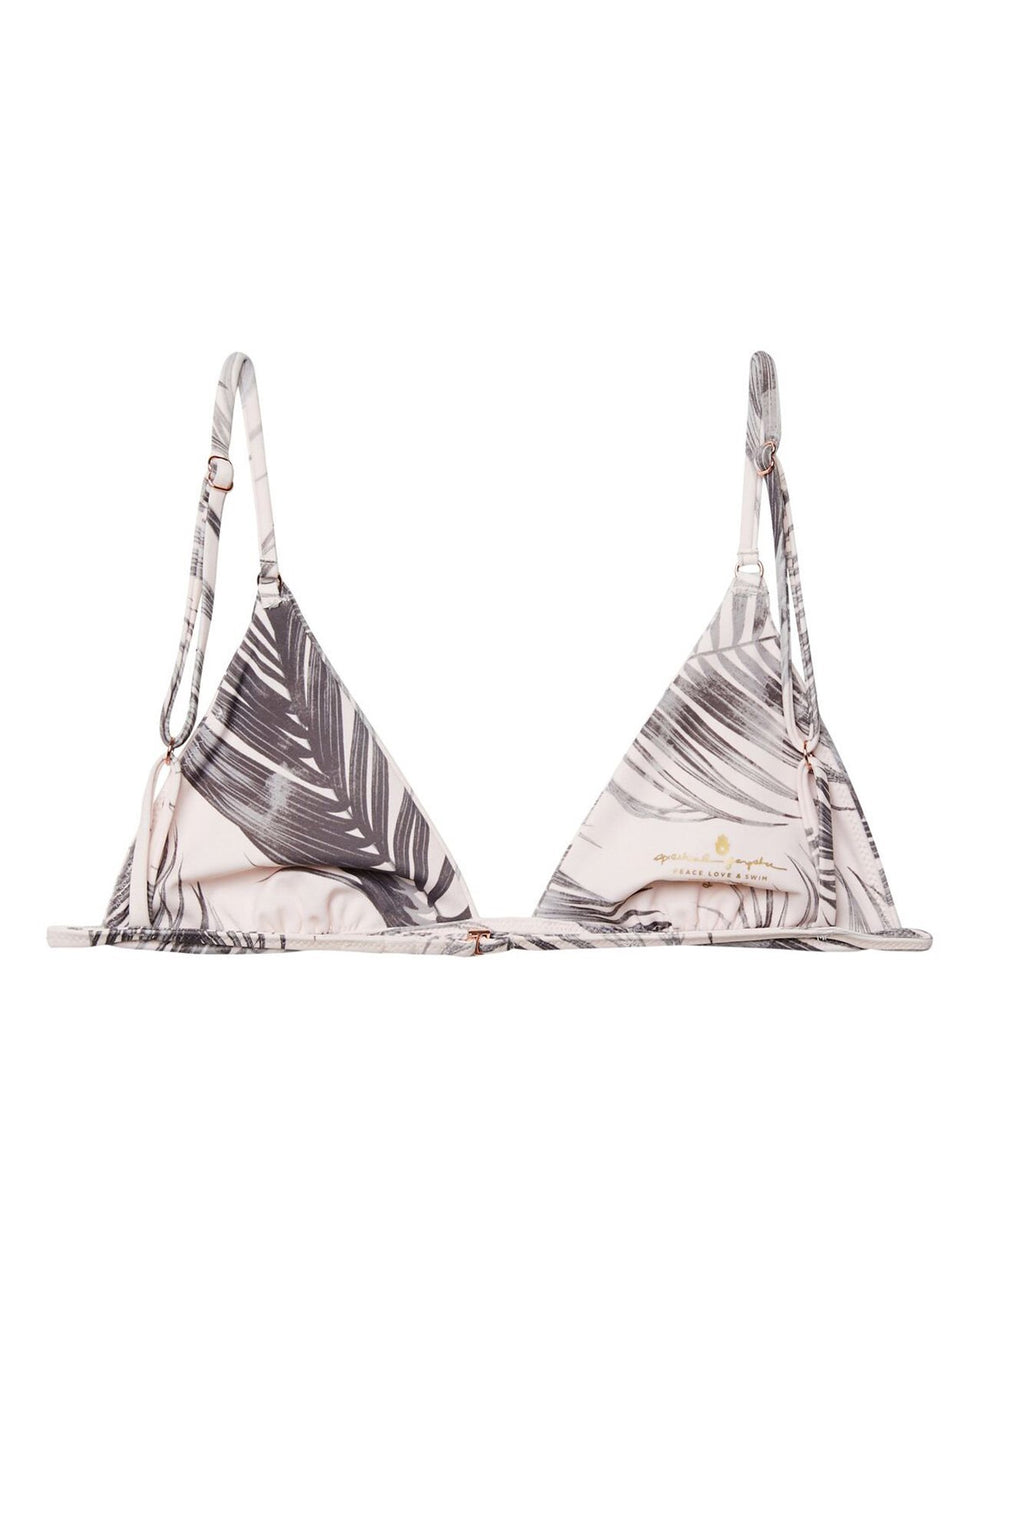 UNIKONCEPT Lifestyle boutique: Image shows a model wearing a spiritual gangster bikini top. The breezy bikini top it comes with a pink base and grey palm leaves, the top features a triangle top with spaghetti straps